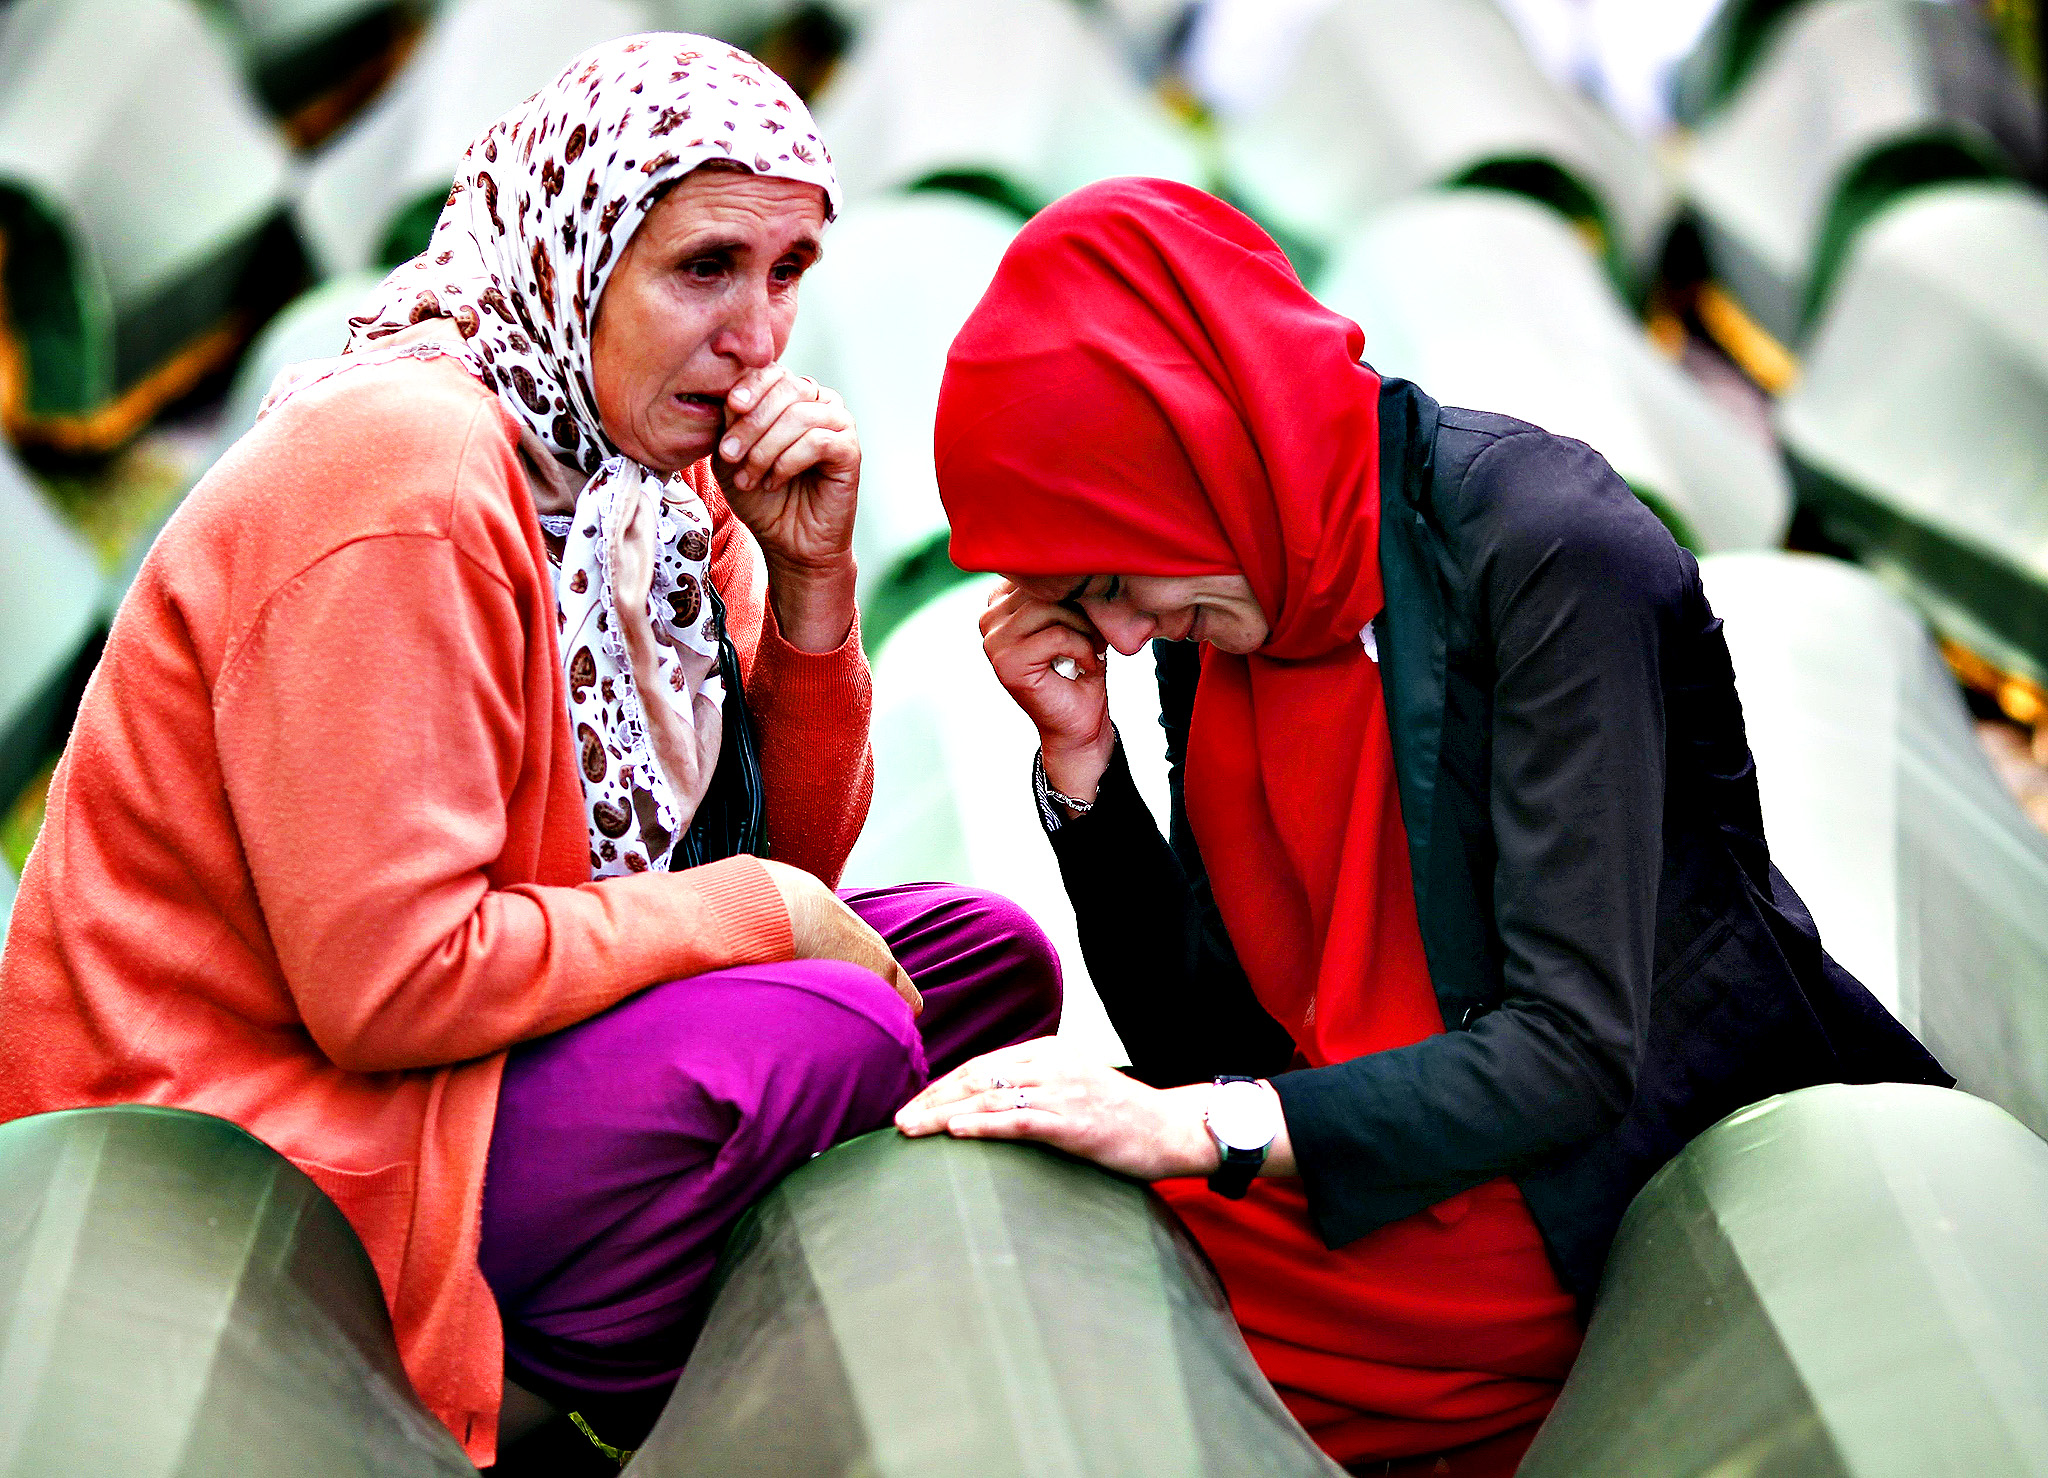 Bosnian Muslim women cry near the coffin of a relative, one of the 175 coffins of newly identified victims from the 1995 Srebrenica massacre, in Potocari Memorial Center, near Srebrenica...Bosnian Muslim women cry near the coffin of a relative, one of the 175 coffins of newly identified victims from the 1995 Srebrenica massacre, in Potocari Memorial Center, near Srebrenica, July 11, 2014. Family members, foreign dignitaries and guests are expected to attend a ceremony in Srebrenica on Friday marking the 19th anniversary of the massacre in which Bosnian Serb forces commanded by military commander Ratko Mladic killed up to 8,000 Muslim men and boys. The remains of the 175 identified victims will be buried at a memorial cemetery during the ceremony, their bodies found in some 60 mass graves around the town.